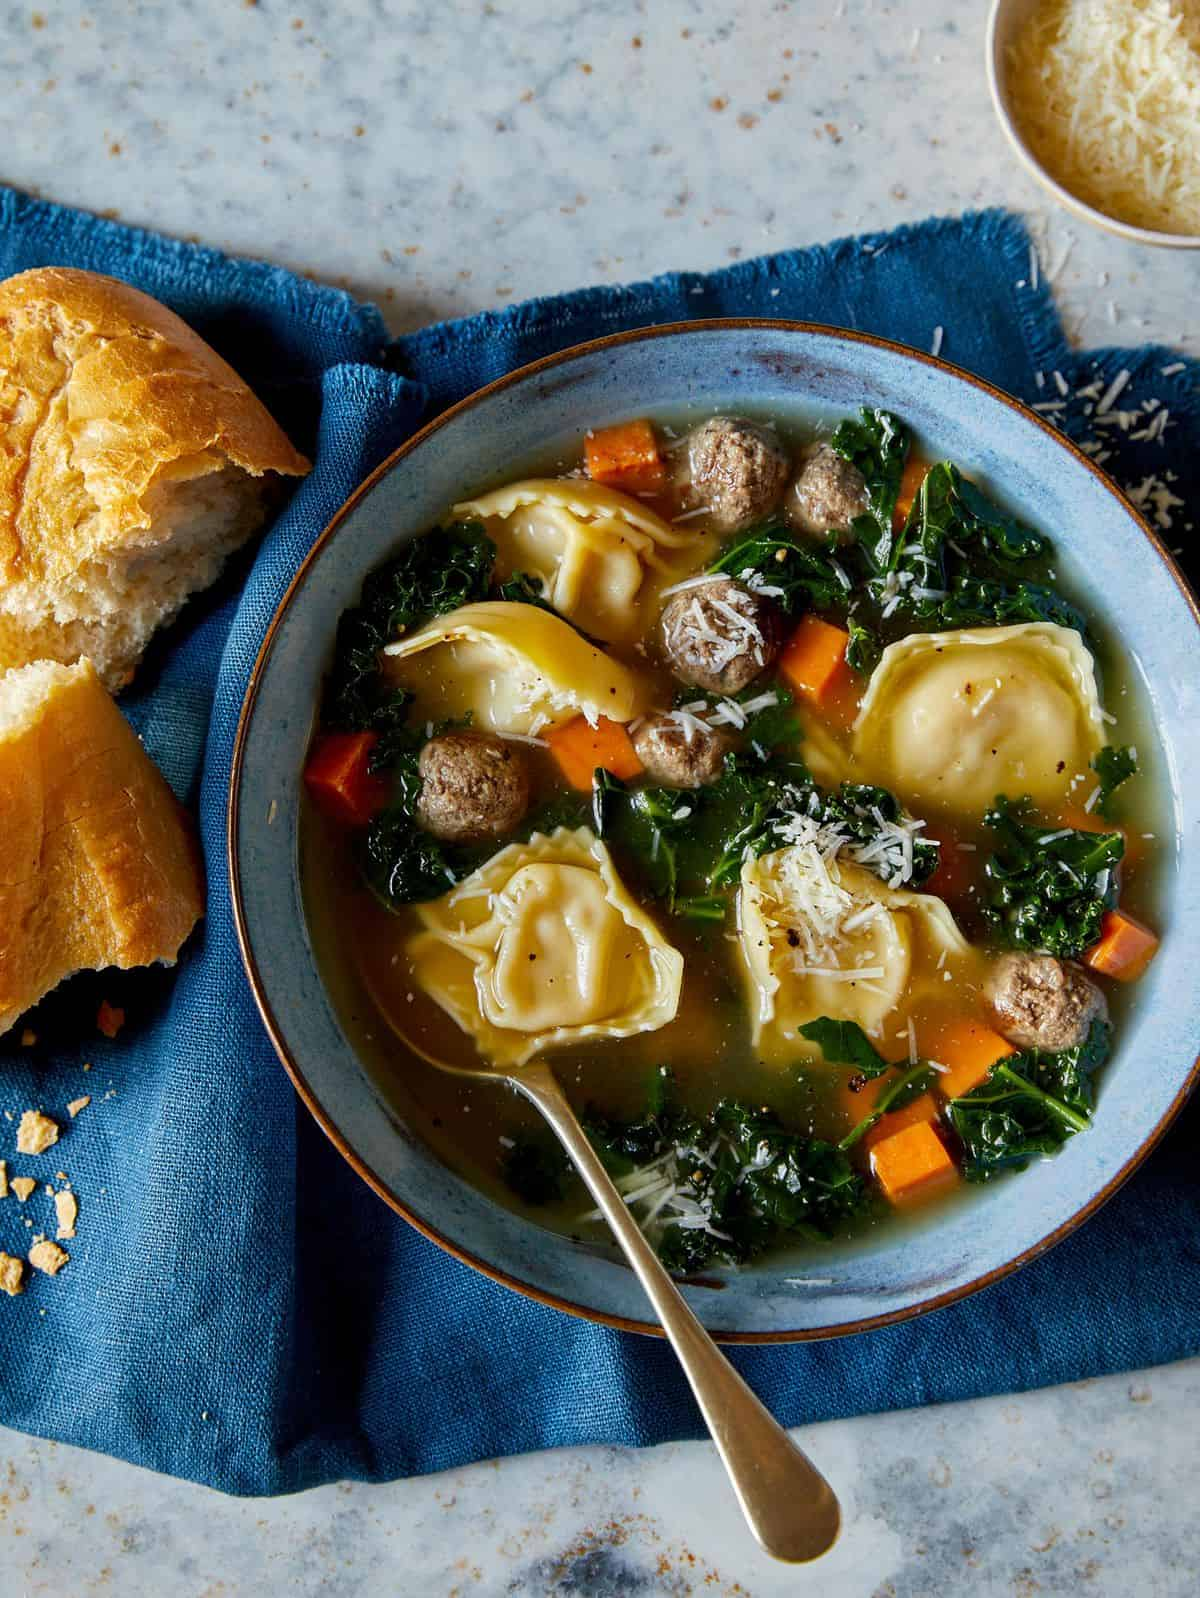 Tortellini, turkey sausage, sweet potato, and kale soup with a spoon and bread.